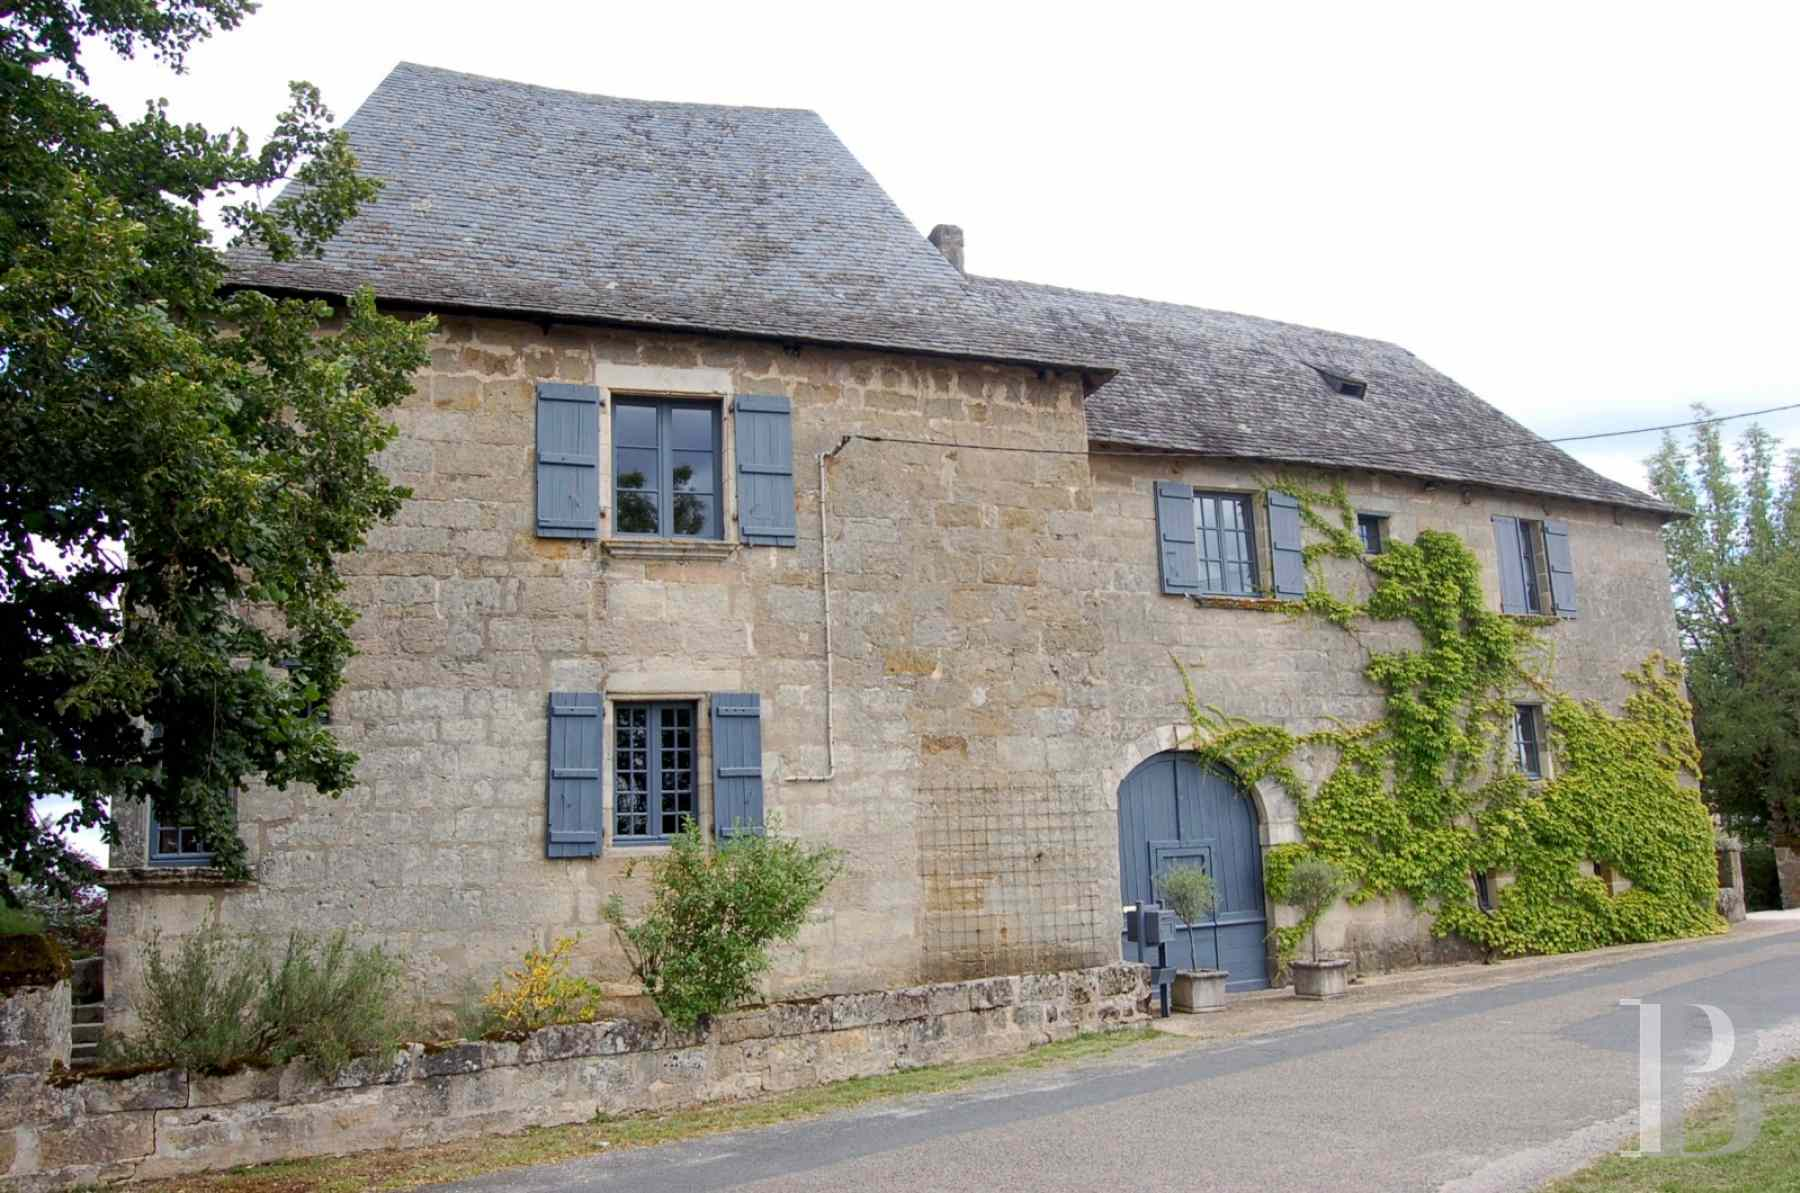 property for sale France limousin perigord quercy - 7 zoom